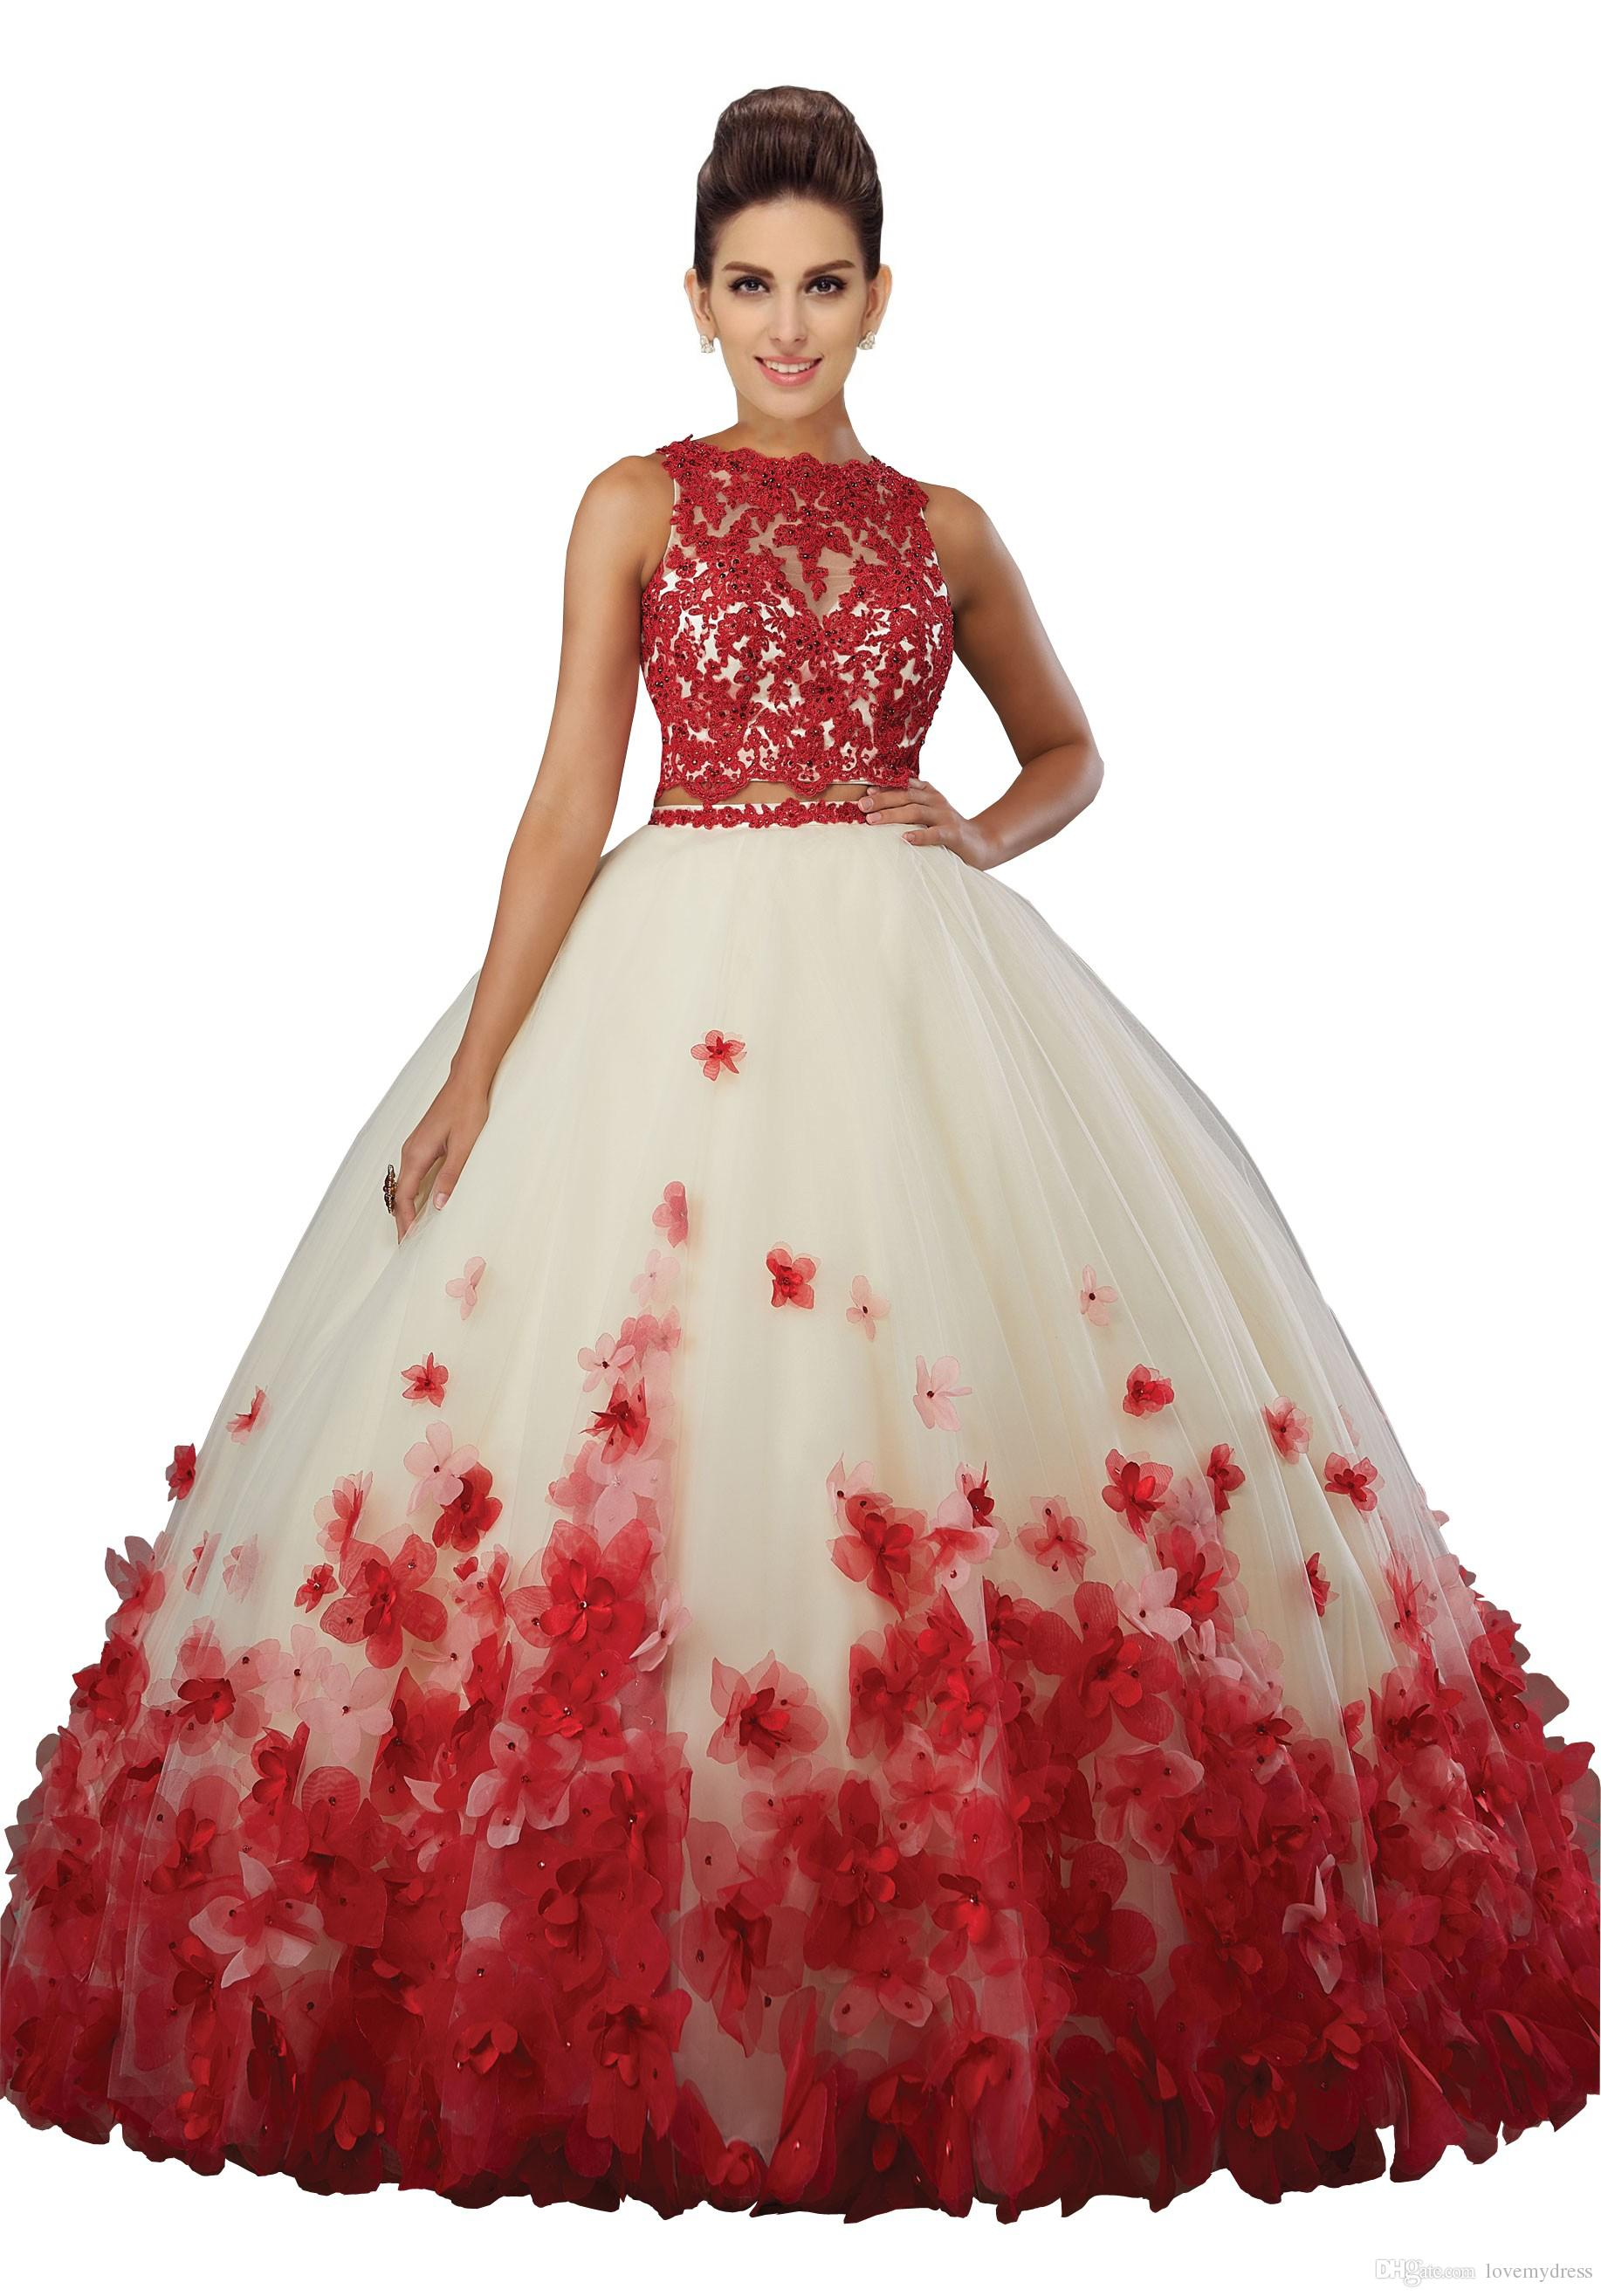 Fashion Two Pieces Quinceanera Prom Dresses Cheap 2019 New Stylish 3D Floral Flowers Sheer Jewel Neck Applique Red Lace Bead Sweet 16 Dress